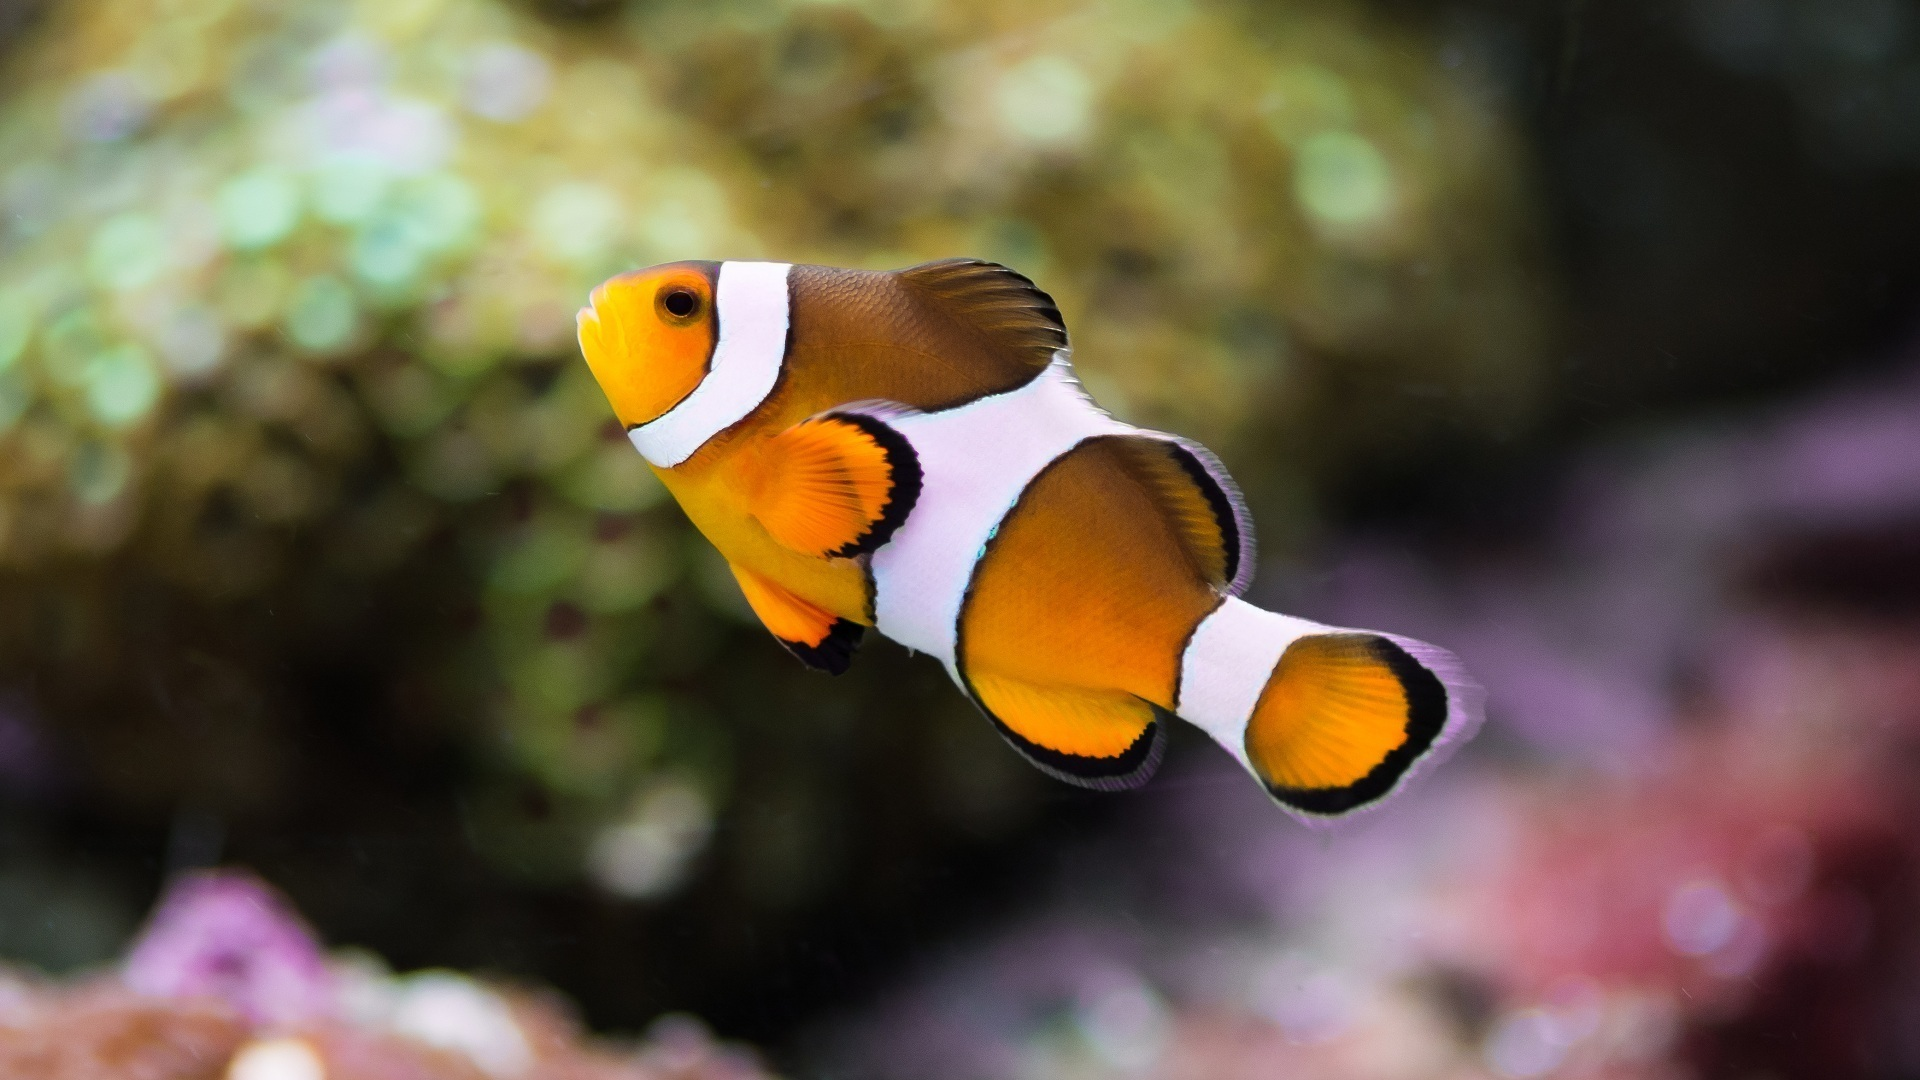 Download Free Cute Love Wallpapers For Mobile Clownfish Hd Animals 4k Wallpapers Images Backgrounds